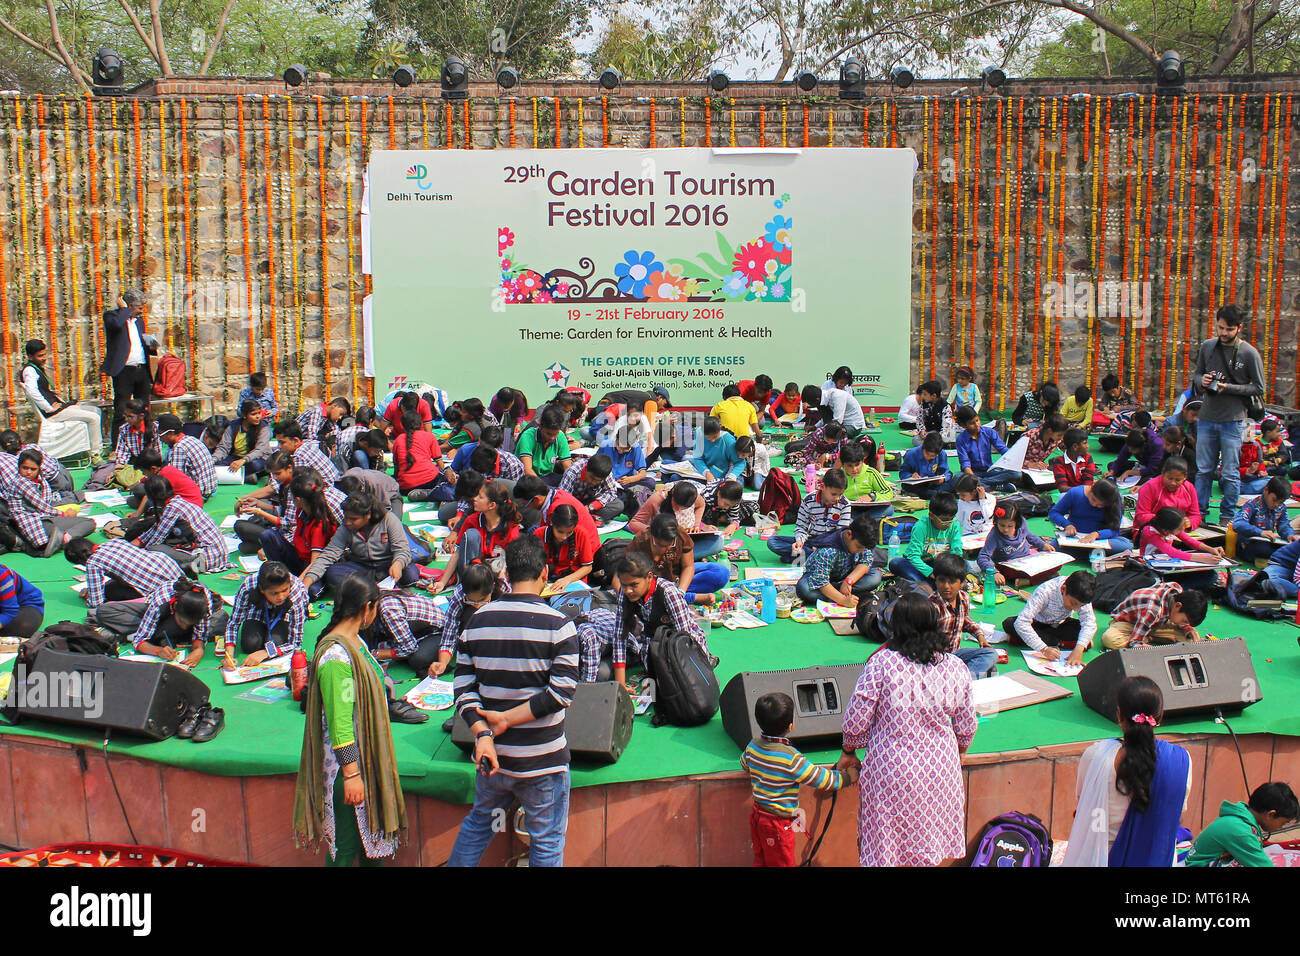 Indian School Children's participated in a Painting Competition Organised by GARDEN OF FIVE SENSES, DELHI - Stock Image